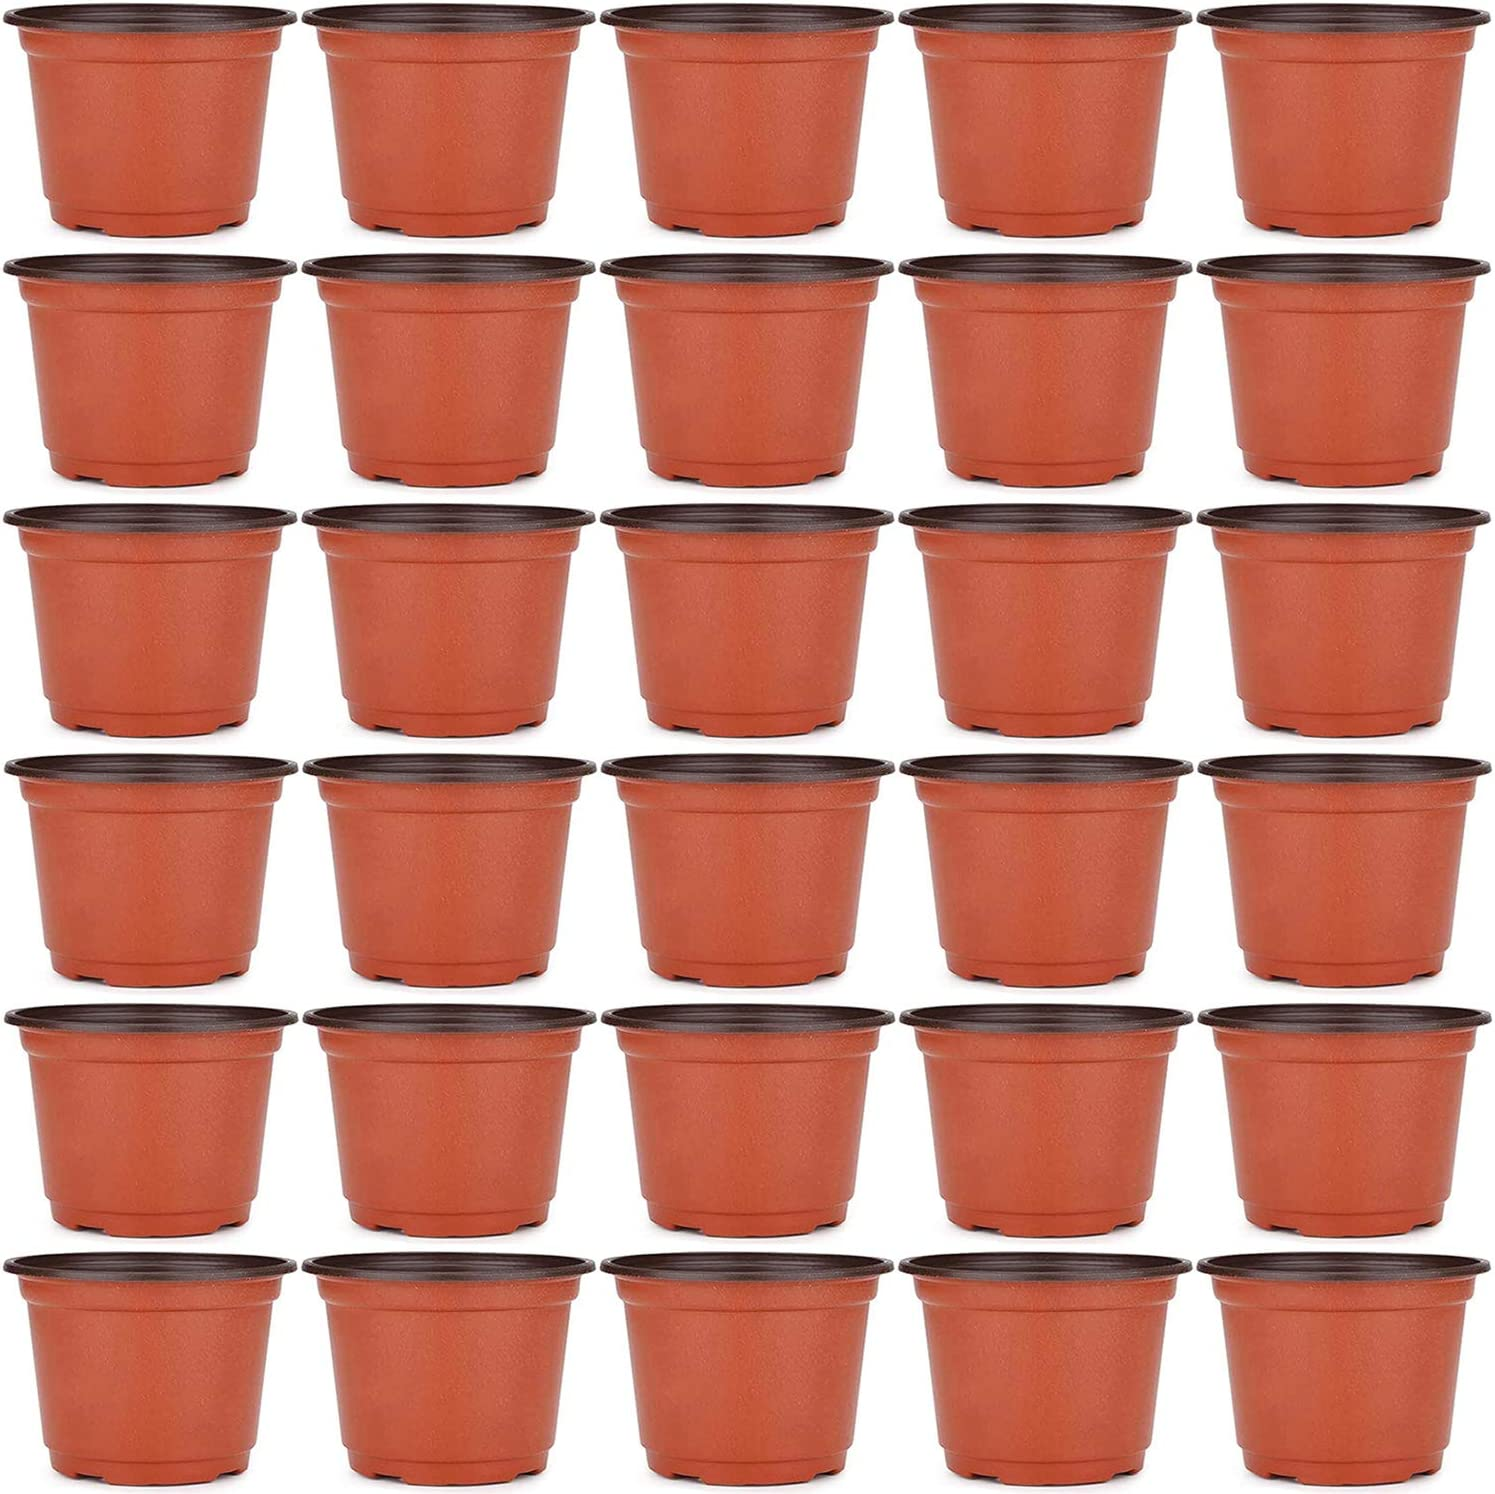 Hulless 4 Inch Plastic Plant Nursery Pots, Seed Starting Pot, Flower Plant Container for Succulents, Seedlings, Cuttings, Transplanting, 60 Pcs